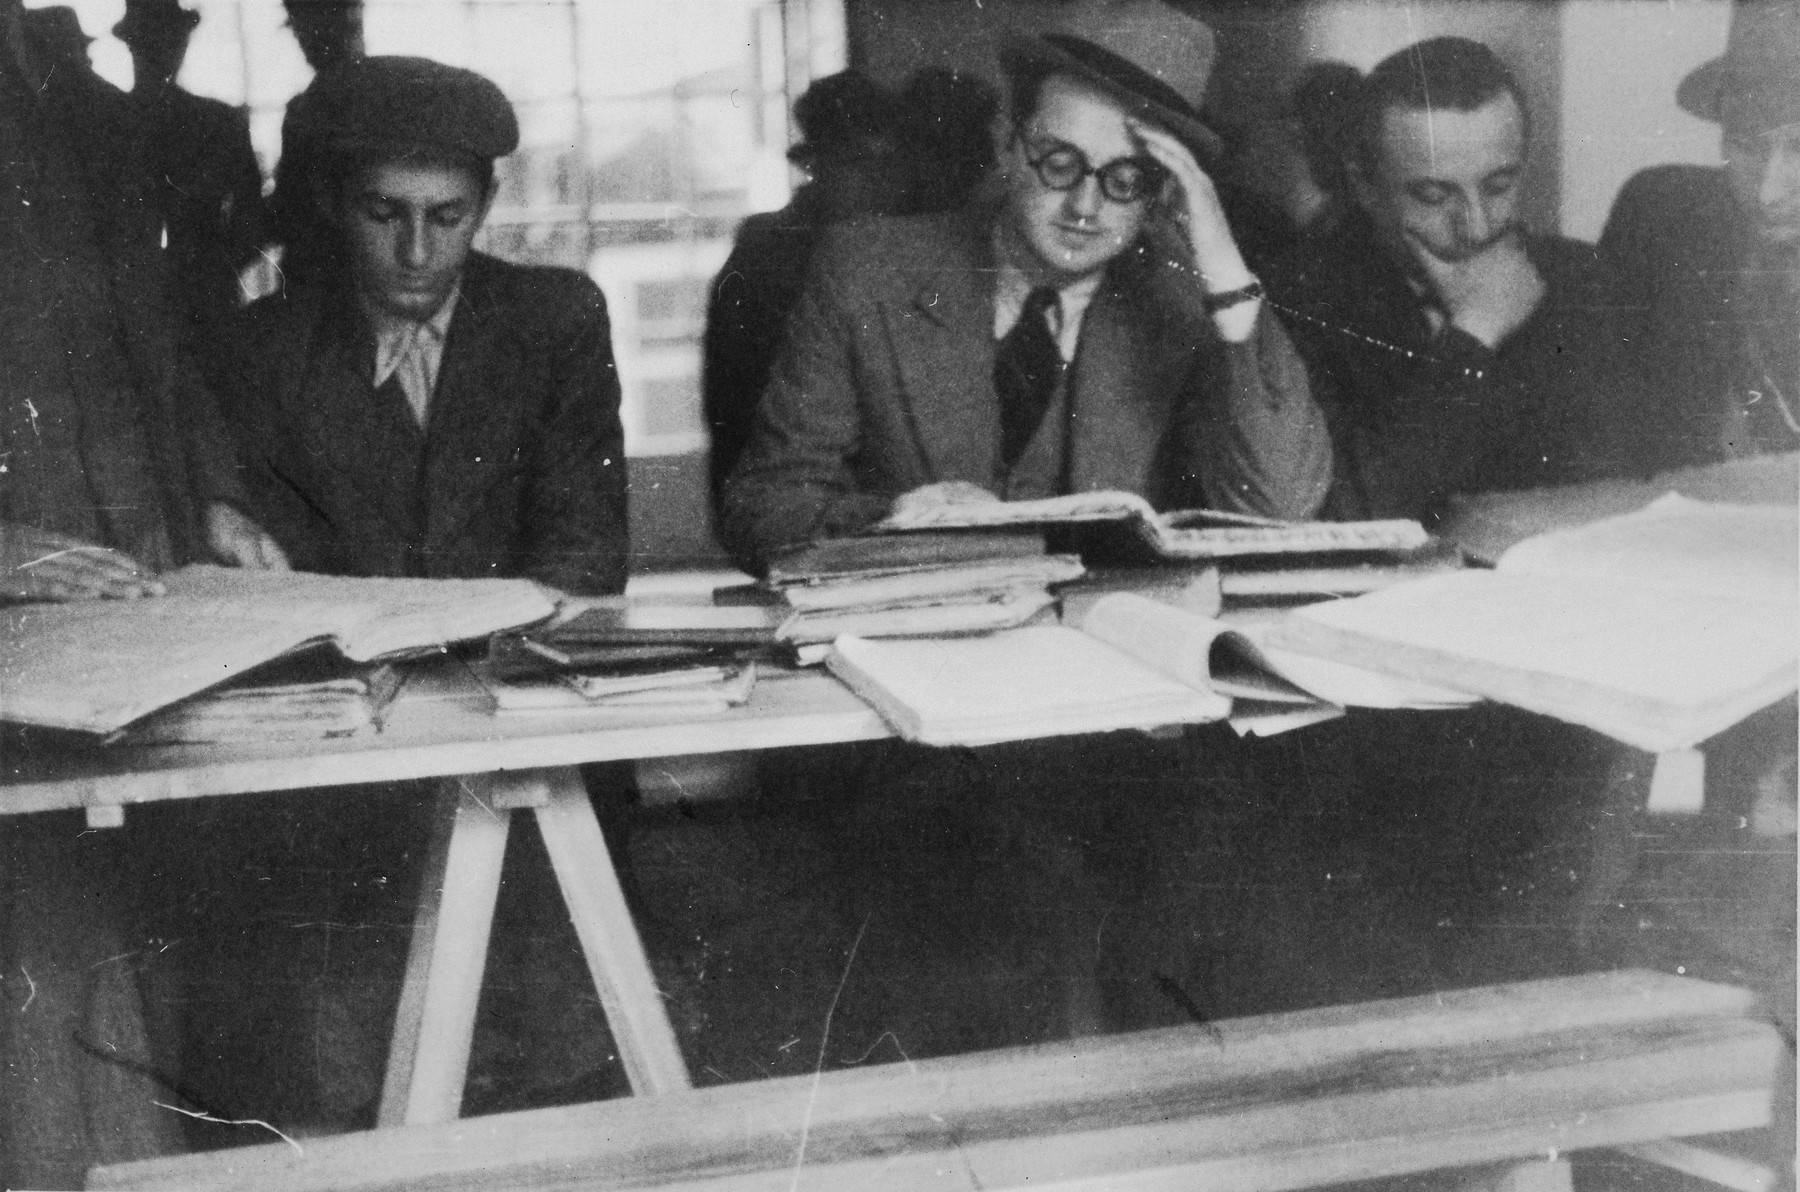 Students at the Mir Yeshiva in Kobe study around a table.  Rabbi Avraham Blumenkrantz is seated in the center and on the far right is Boruch Yaakov Alter.